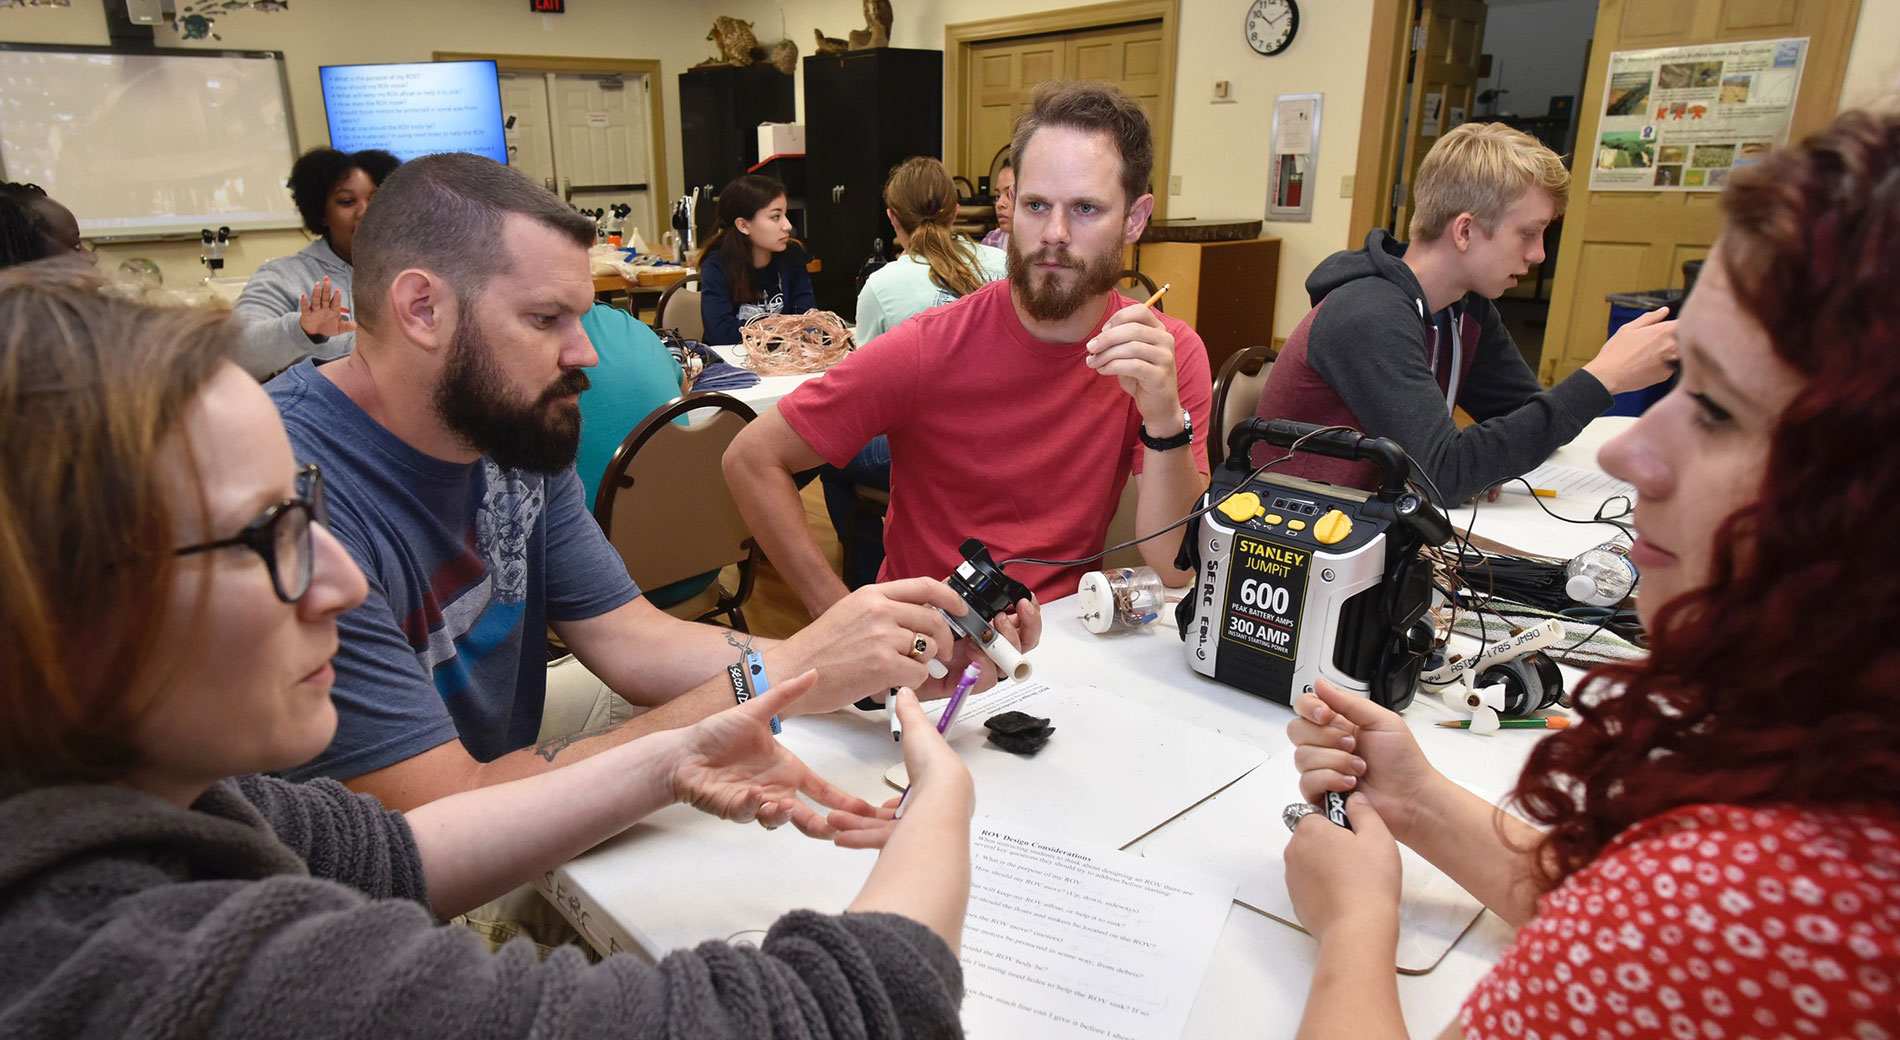 Group of K-12 STEM teachers engaged in professional development activity